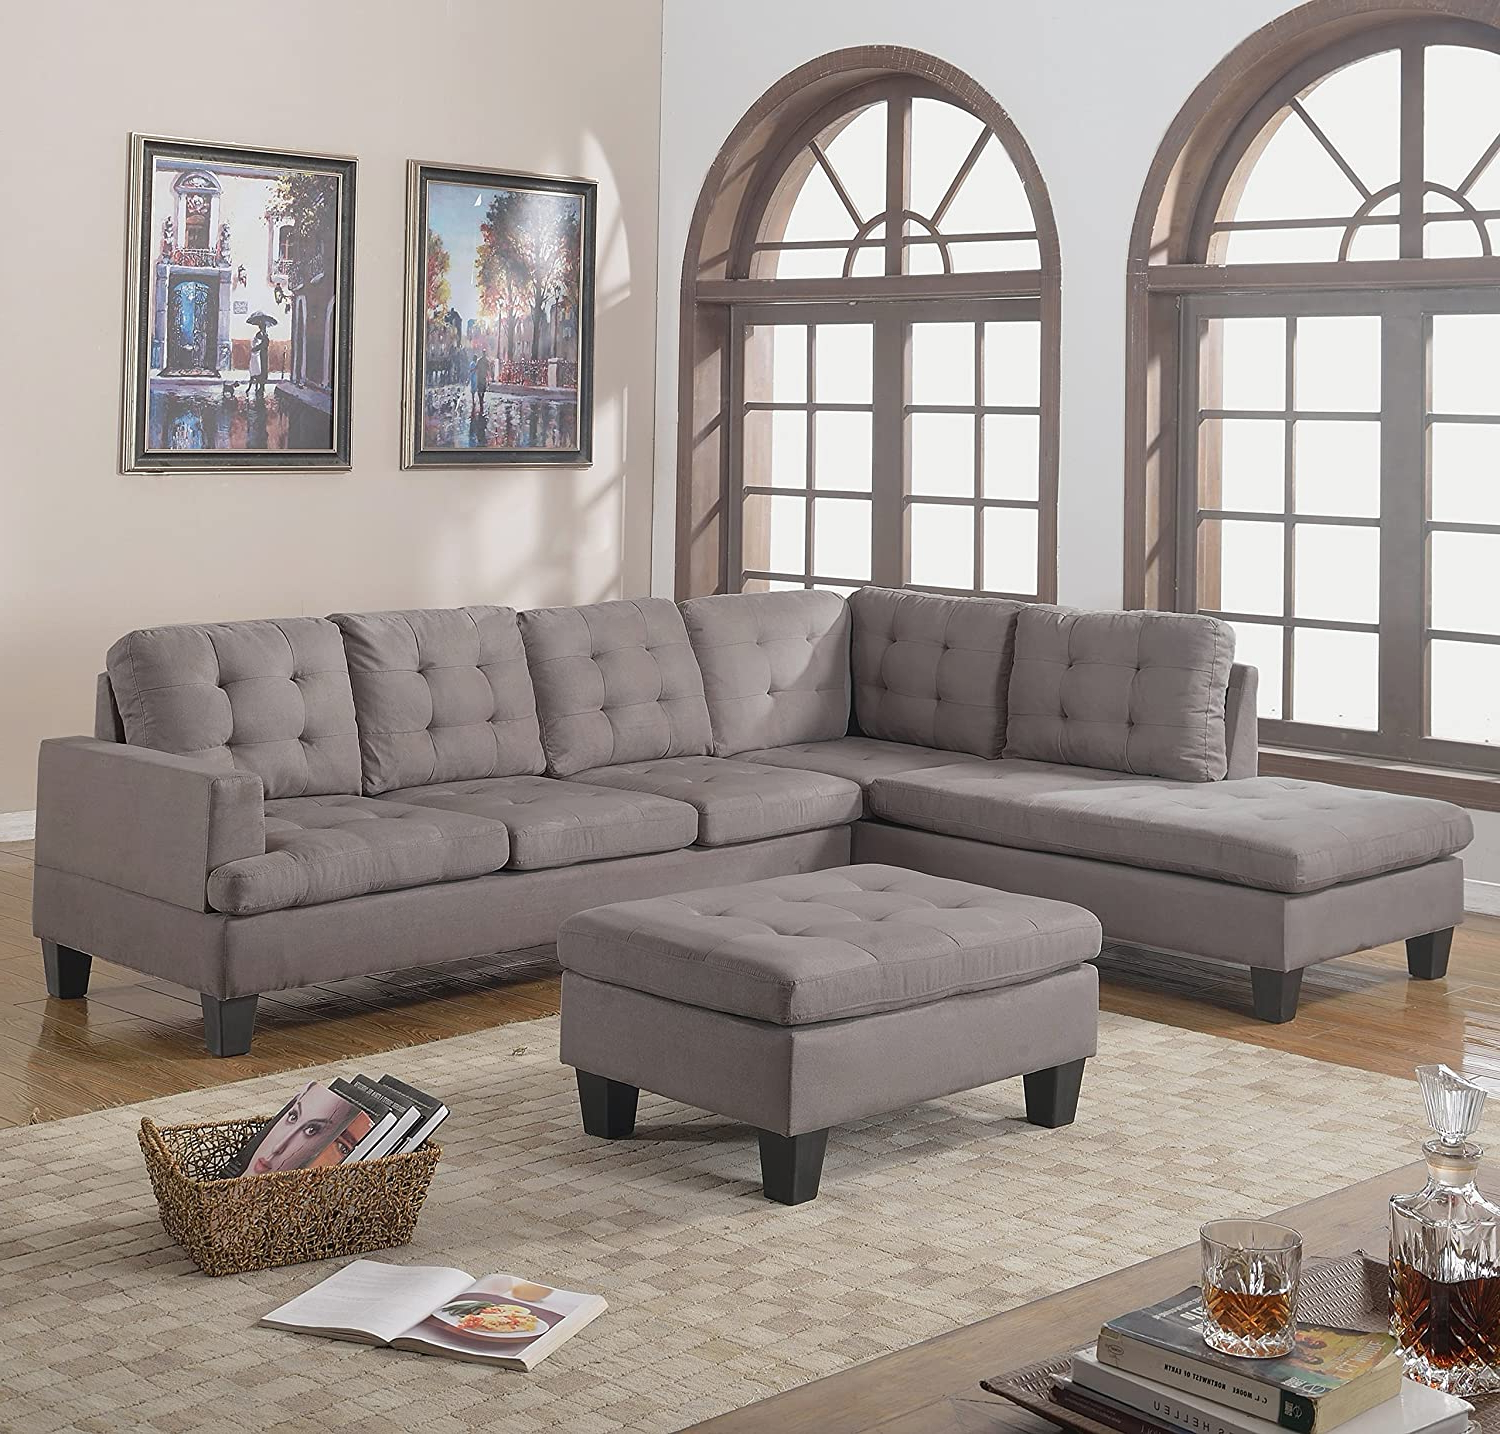 4Pc Crowningshield Contemporary Chaise Sectional Sofas In Most Recent Cheap Living Room Sets Under 300 – Best Living Room Sets (View 25 of 25)